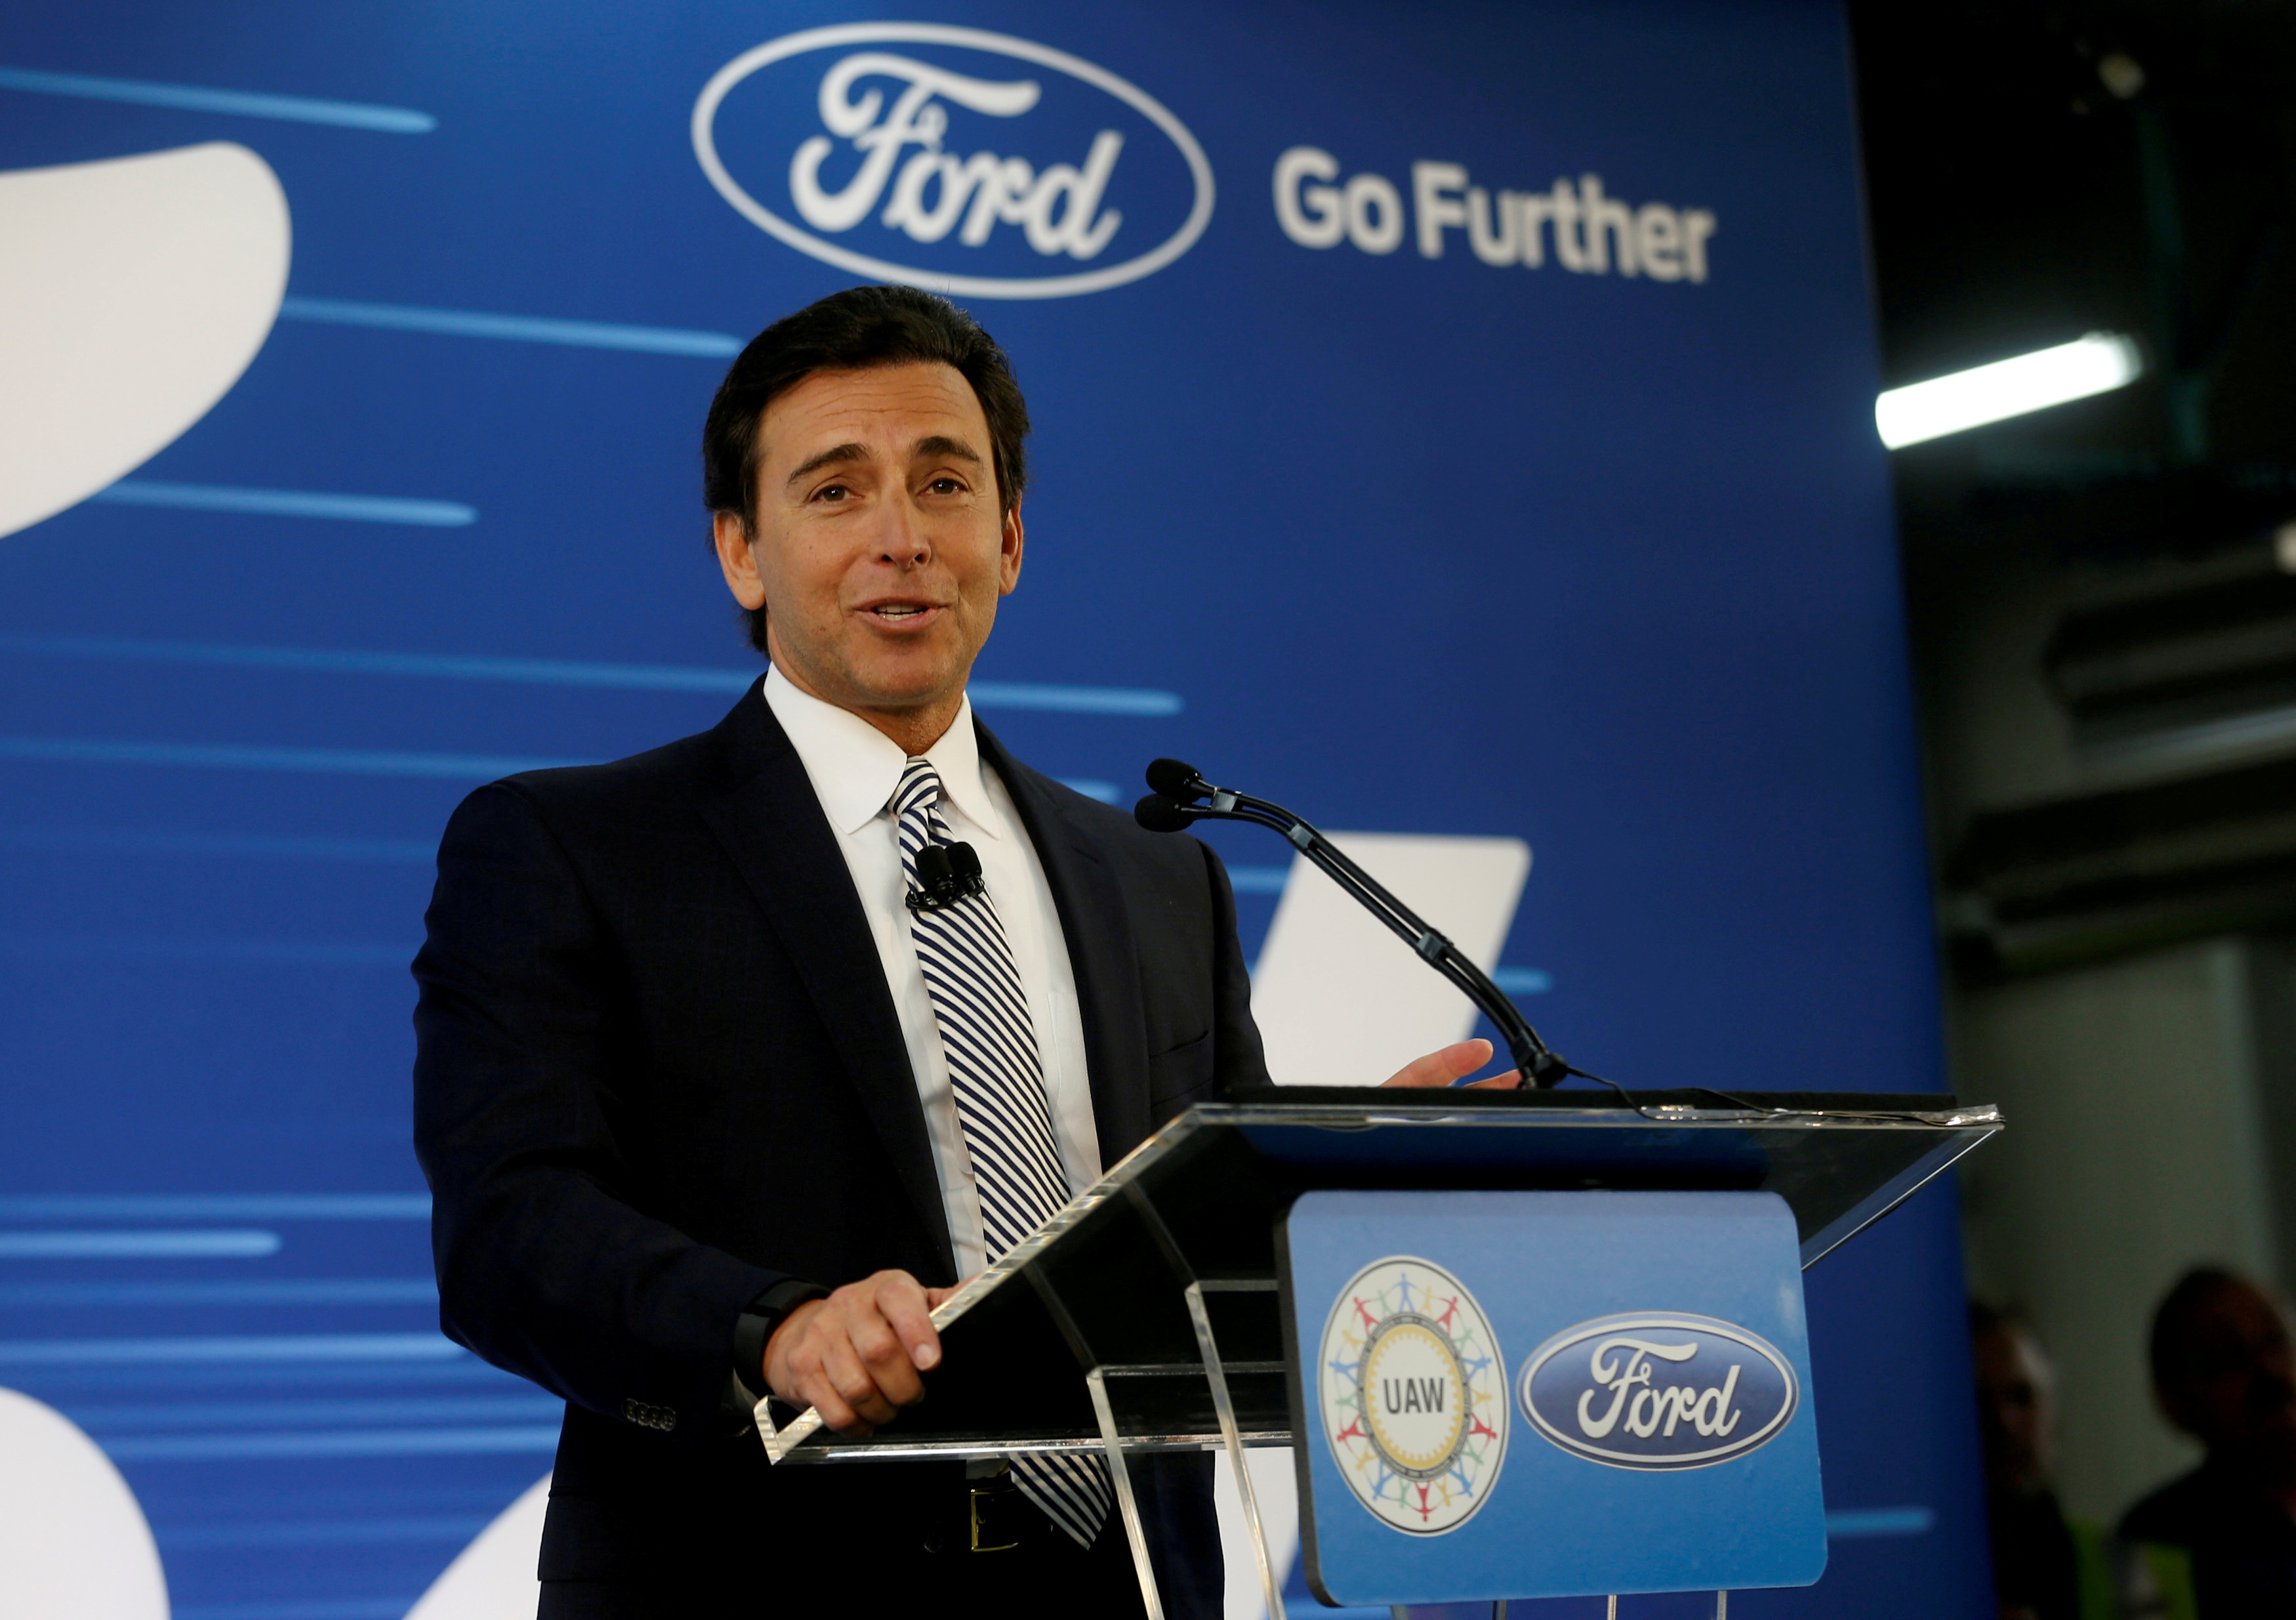 Ford to replace CEO Mark Fields with James Hackett